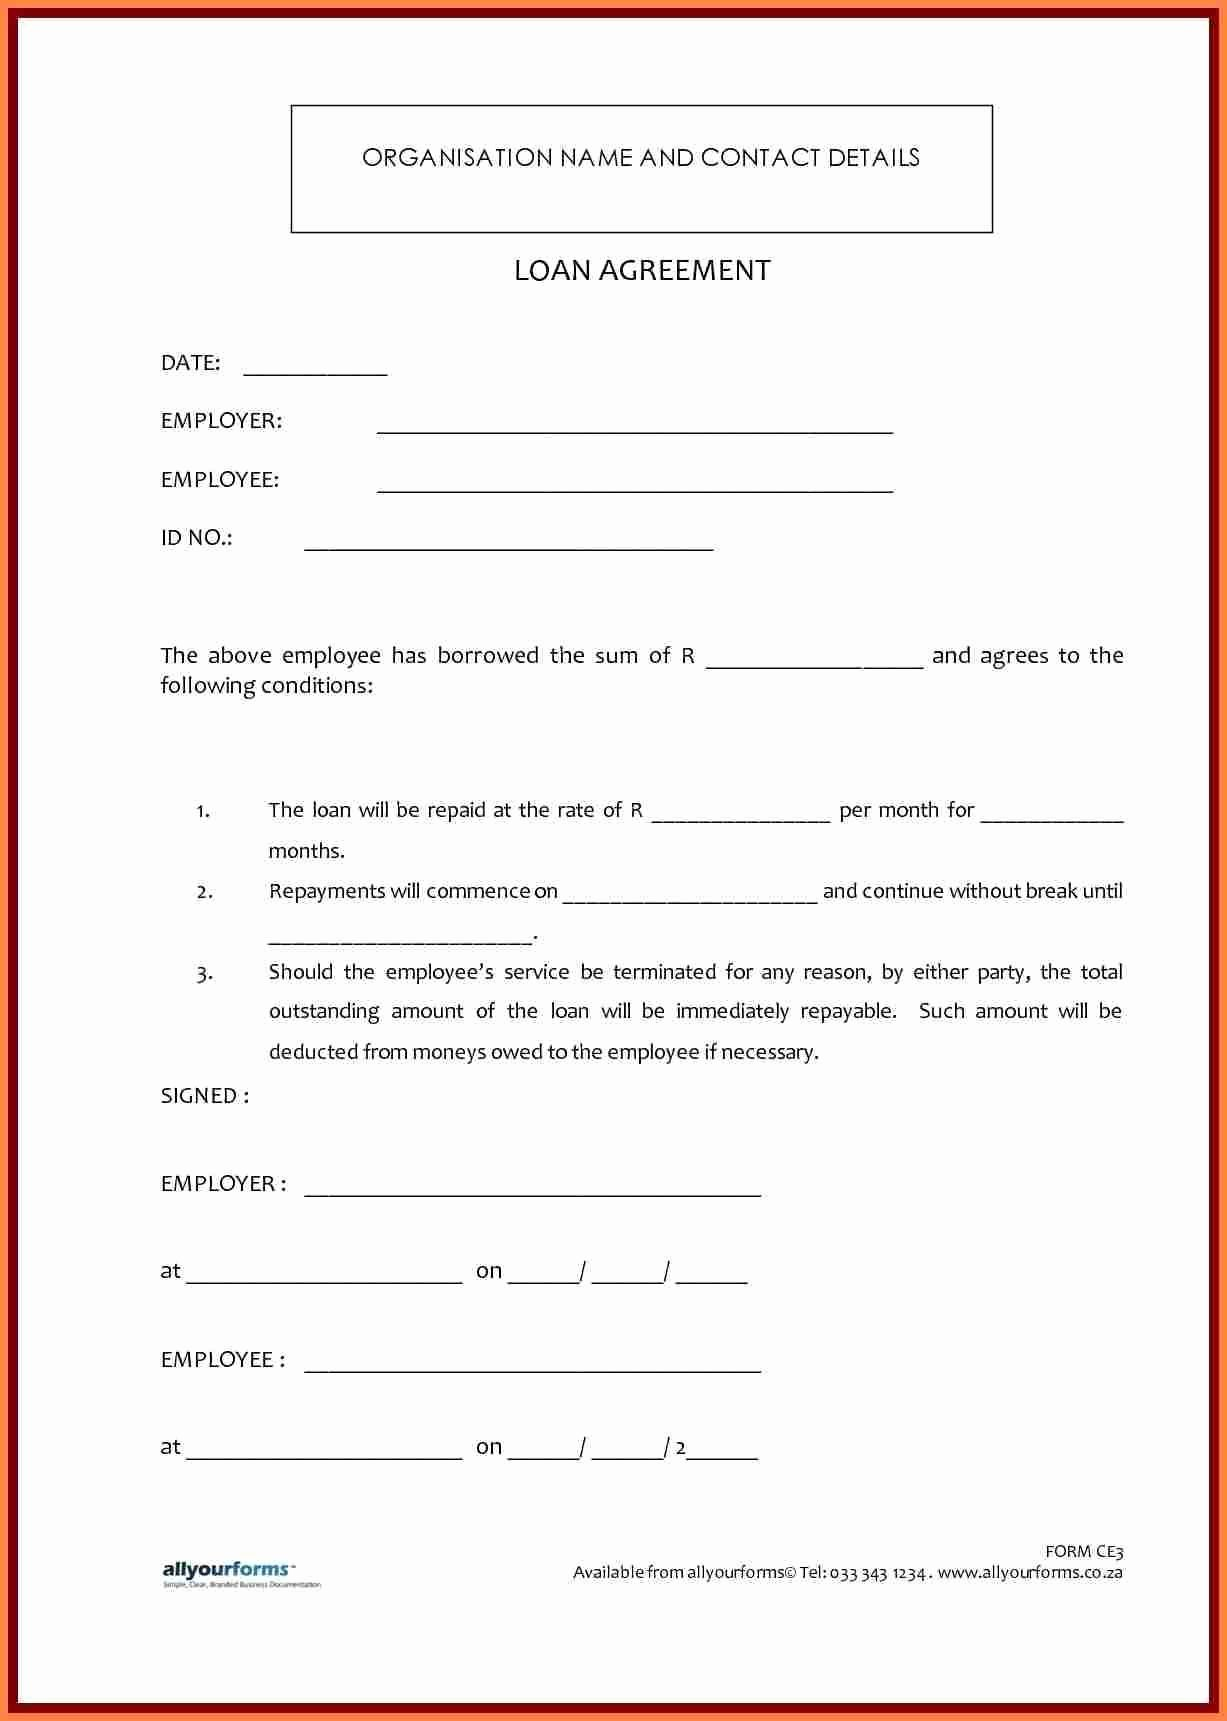 Family Loan Agreement Template Free Unique 41 Last Sample Personal Loan Agreement Between Family Ga